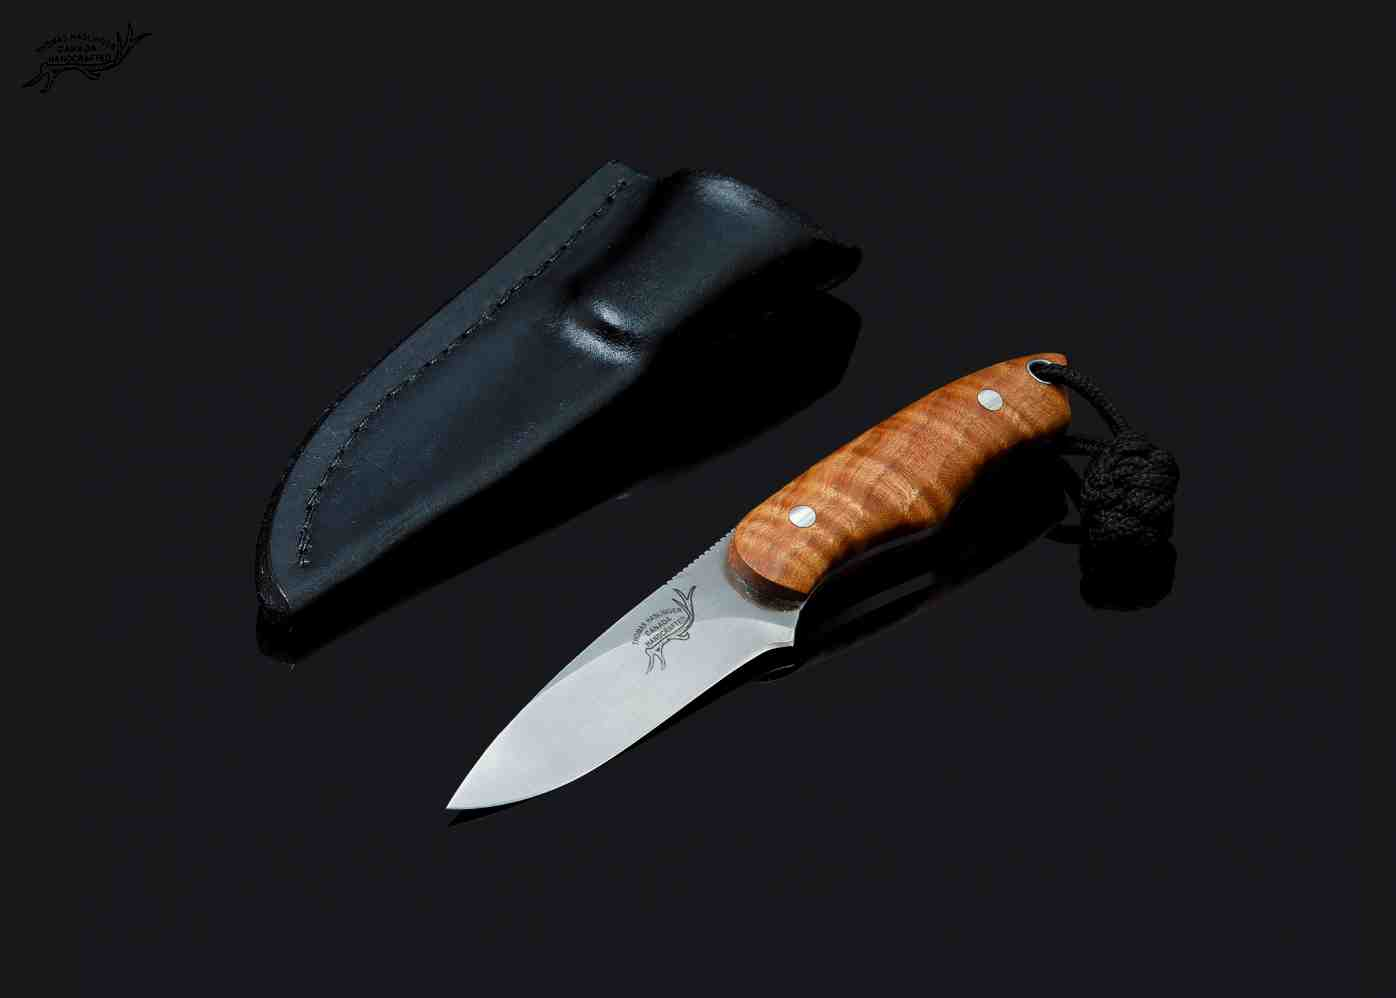 Fiddleback Maple Utility in CPM S35-VN Stainless w/ sheath